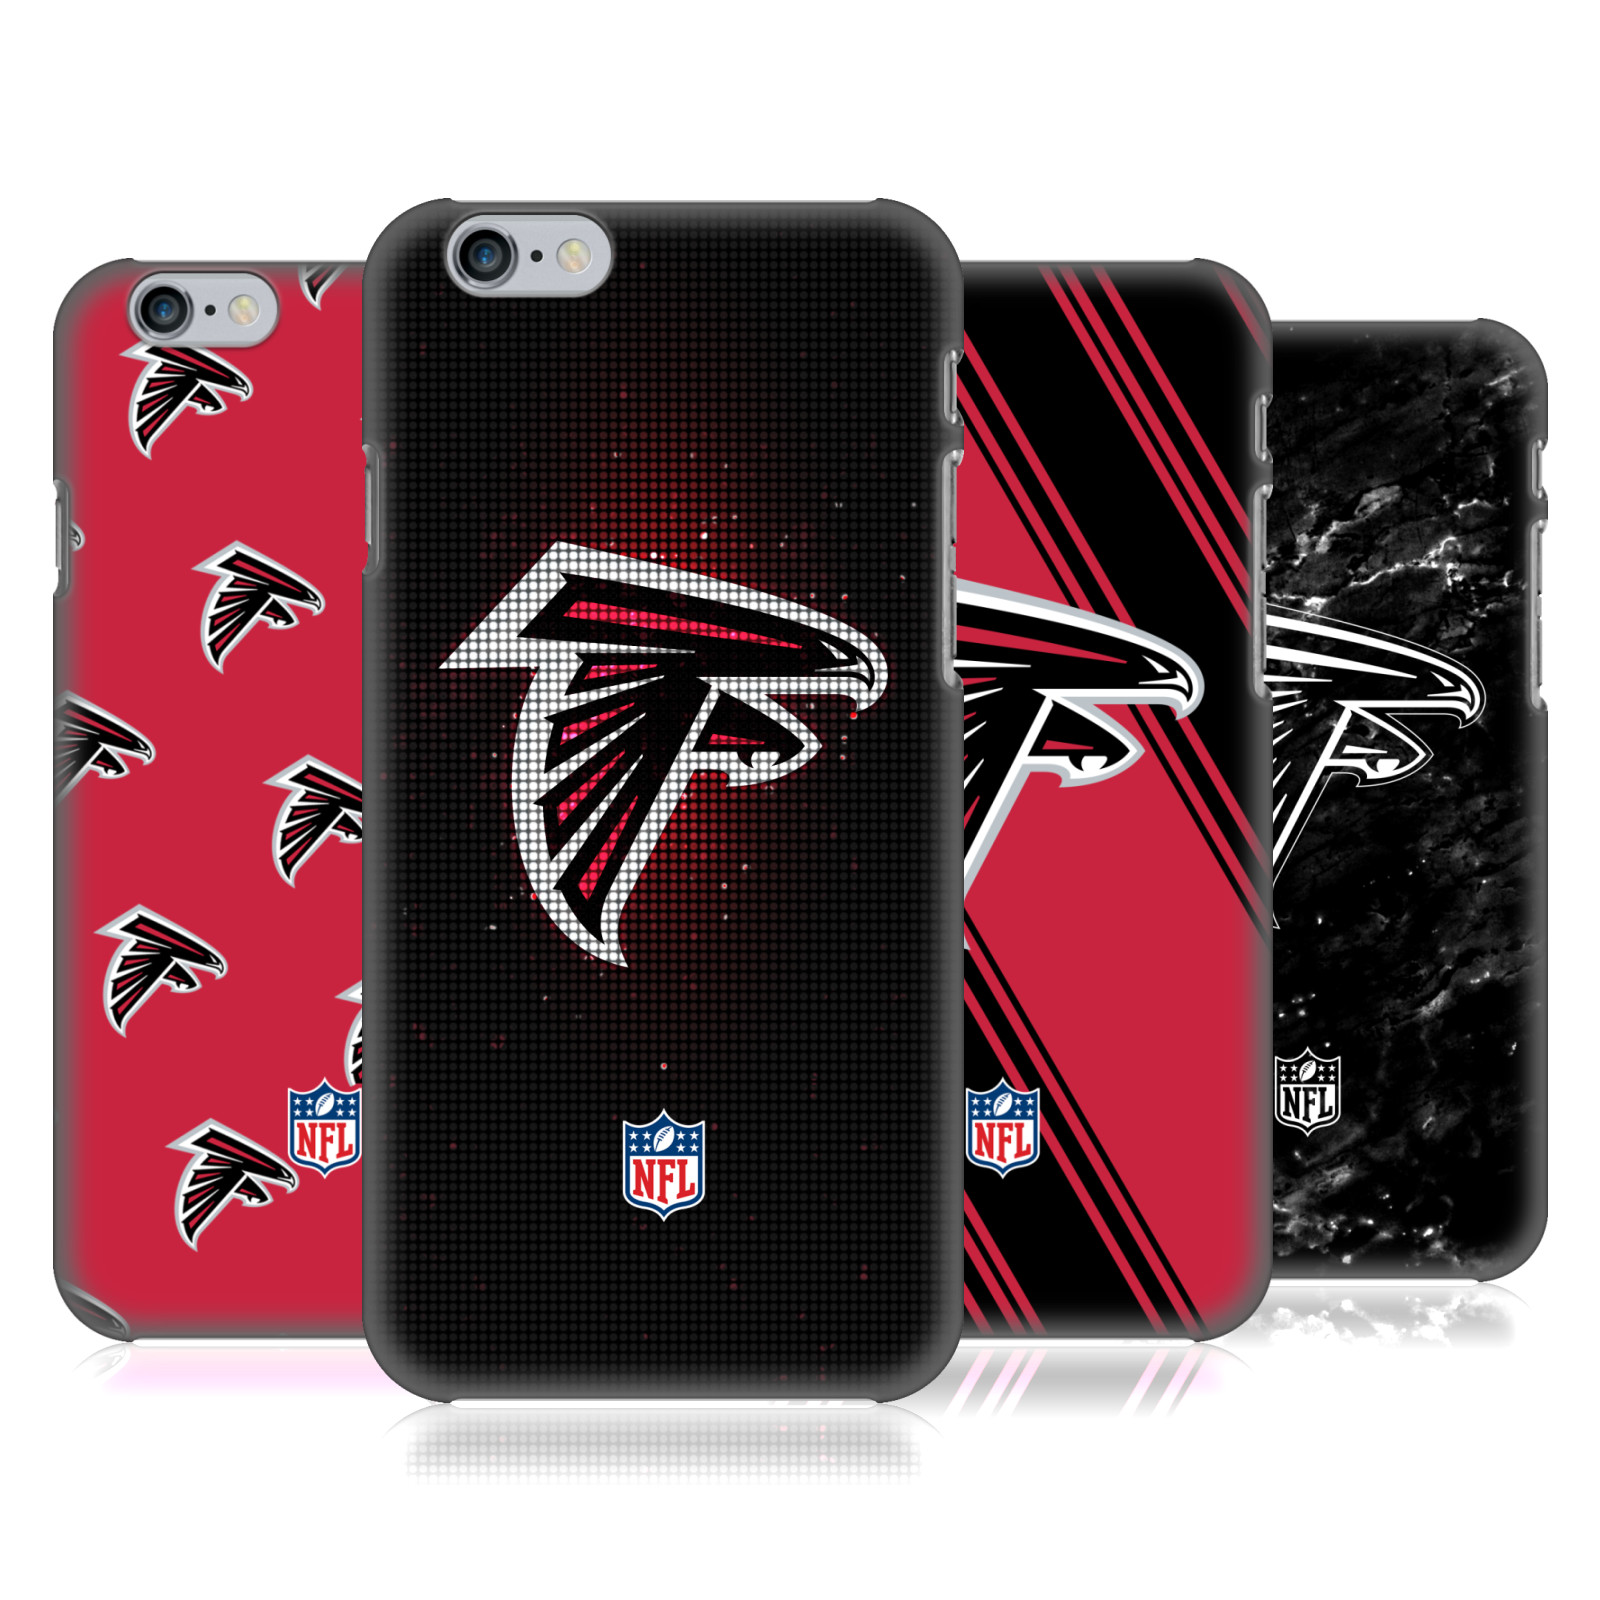 NFL 2017/18 Atlanta Falcons